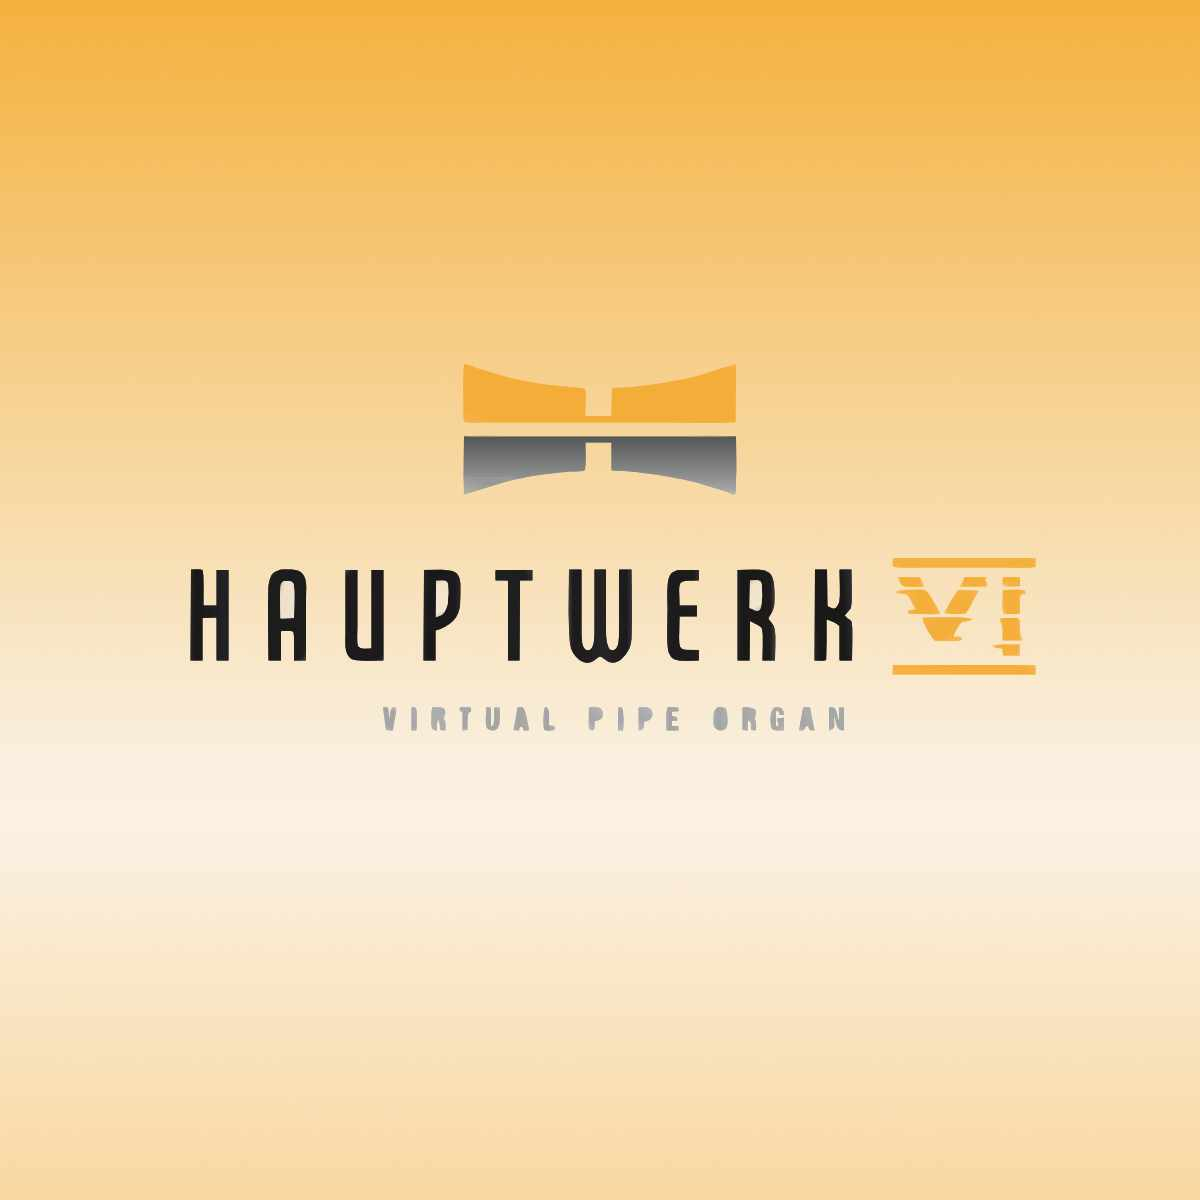 Hauptwerk VI v6.0.1 Released!